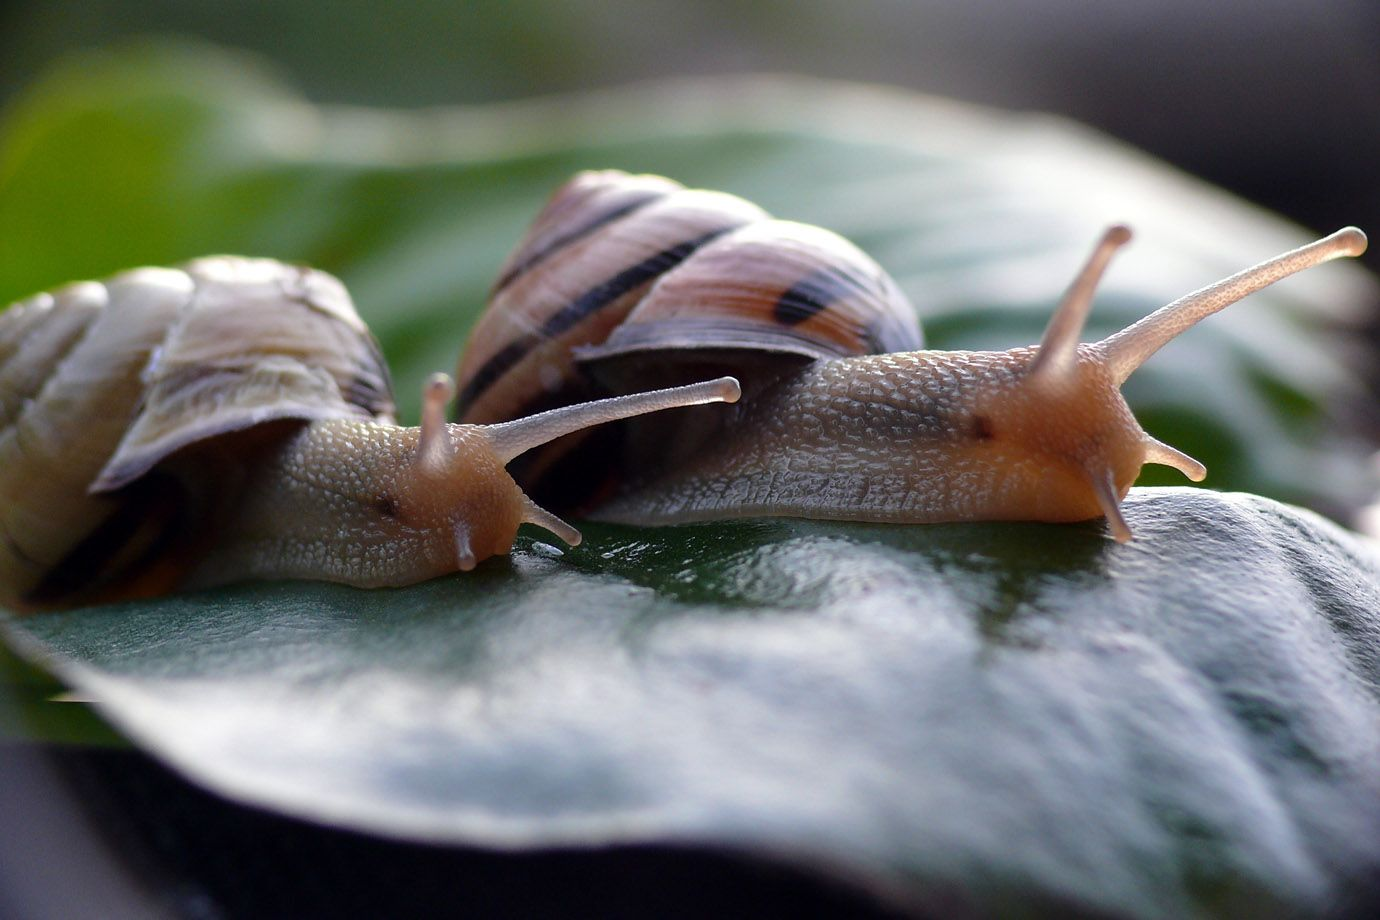 2 Gastropods on the way